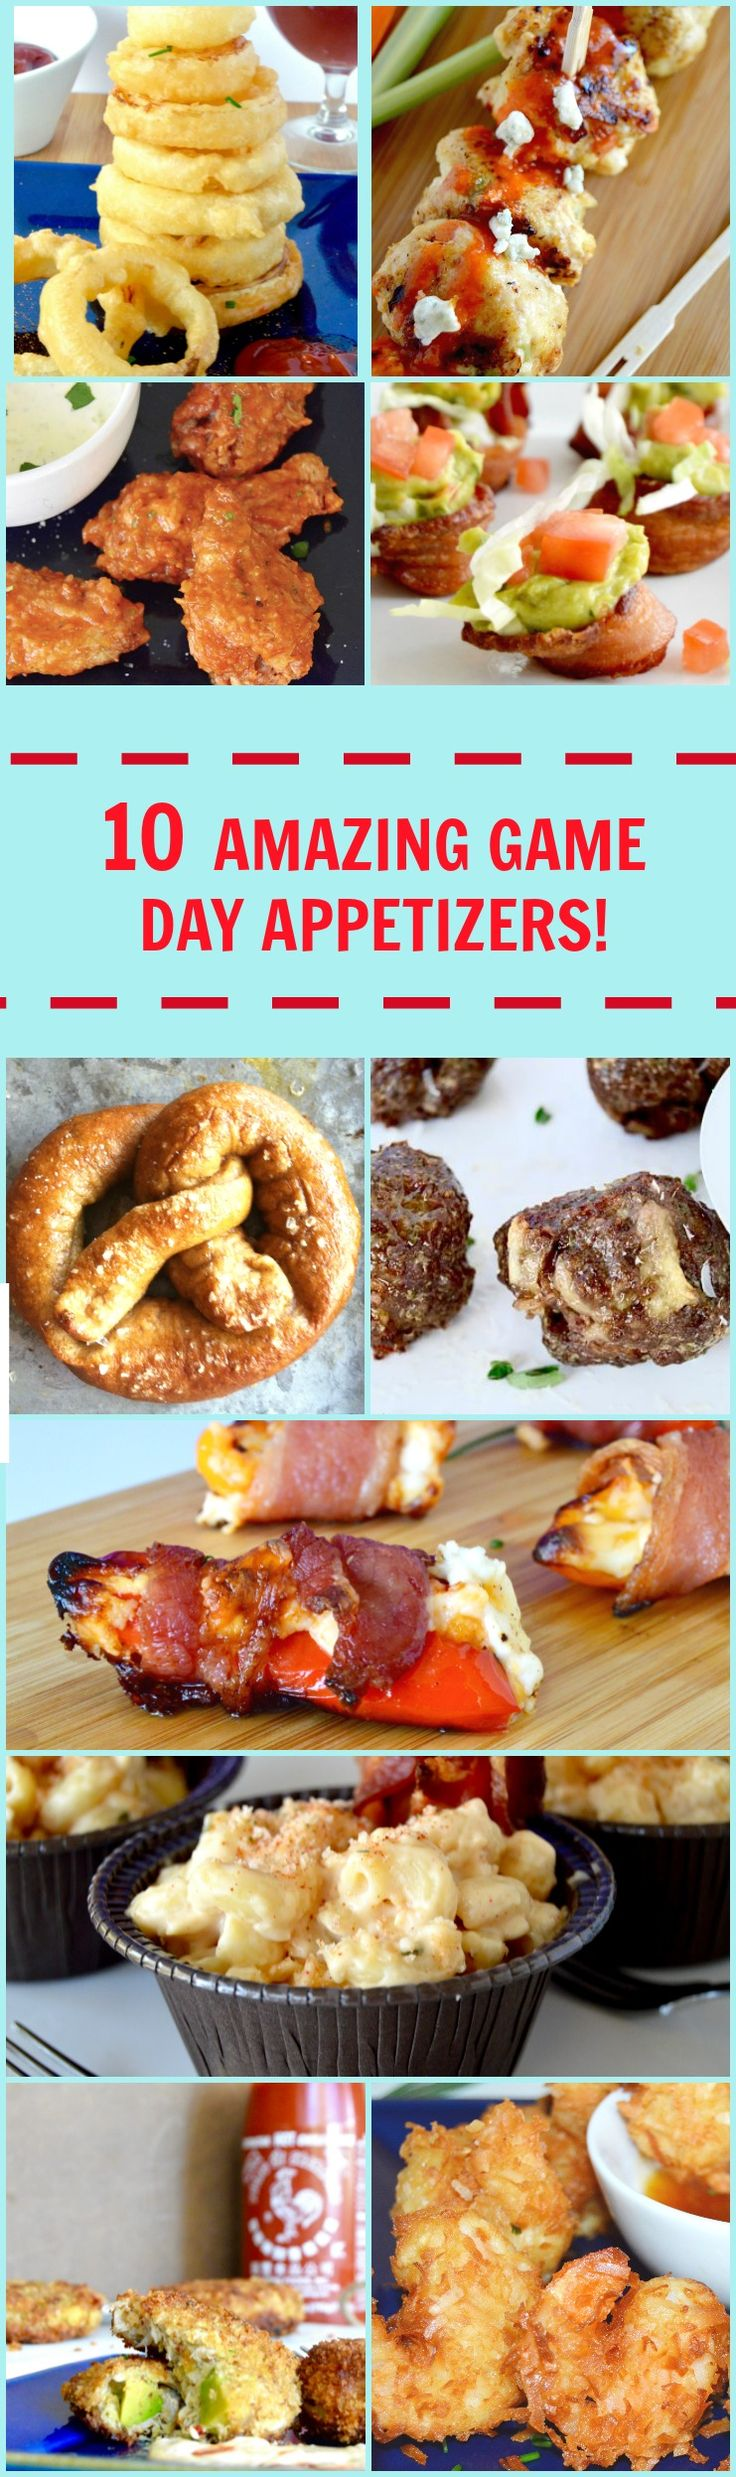 10 amazing Game day Appetizers that will be perfect for any Game day Party! chicken wings, avocado crabcake, buffalo meatballs, Mac n cheese, onion rings, pretzels, poppers, bacon